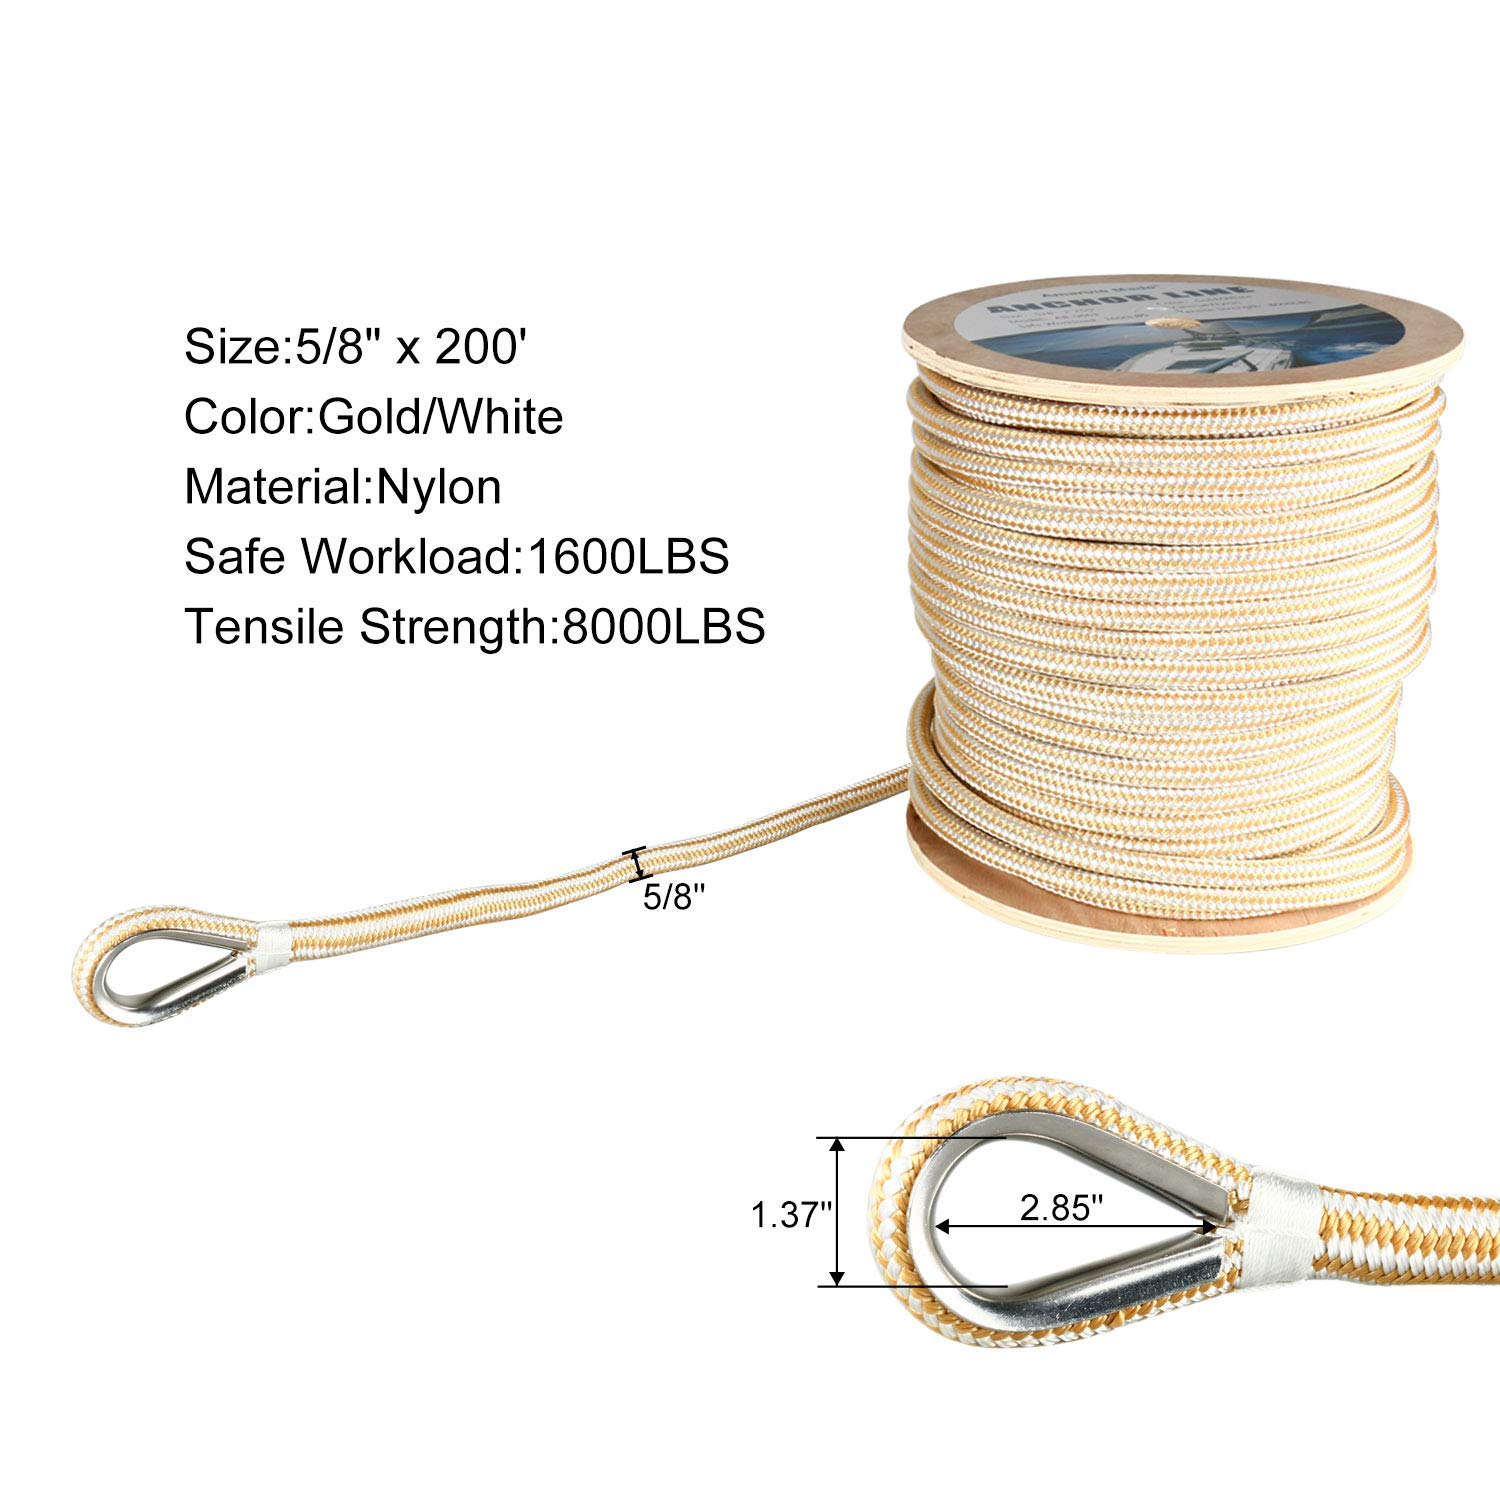 Amarine Made Heavy Duty Double Braid Nylon Anchor Line with Stainless Steel Thimble-White/Gold (5/8'' x 200')